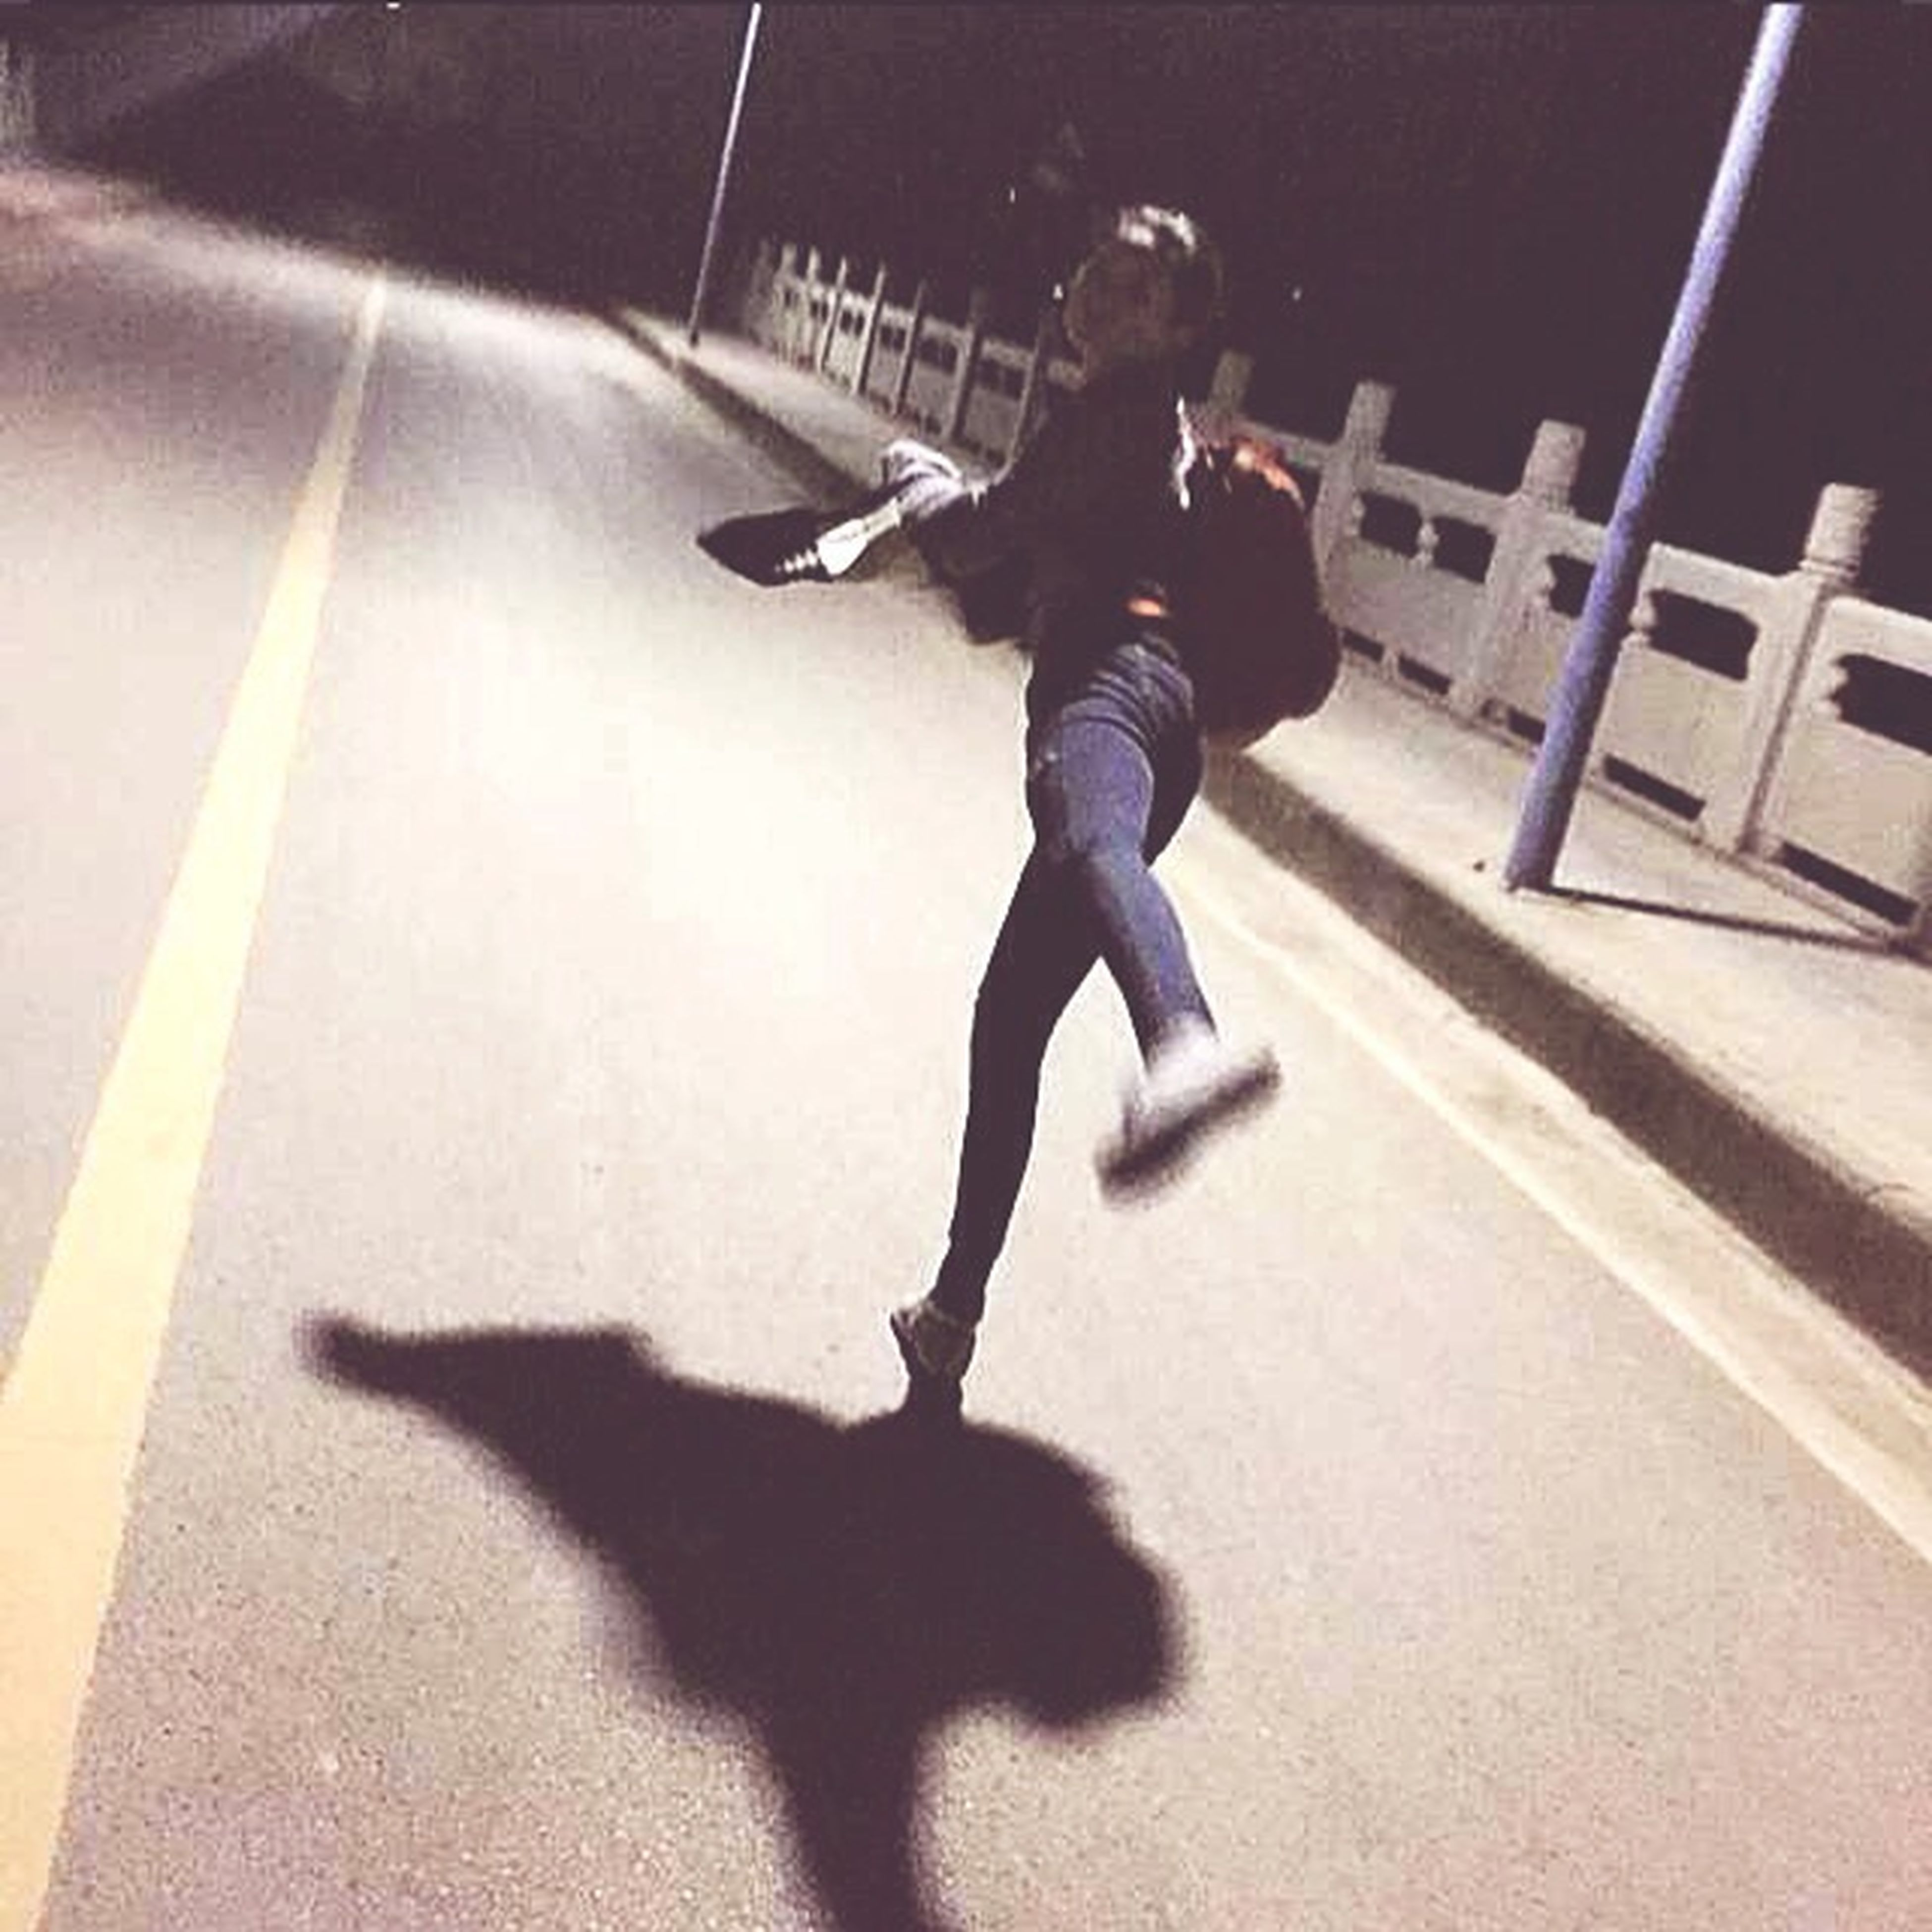 full length, lifestyles, shadow, leisure activity, childhood, sunlight, high angle view, street, jumping, elementary age, casual clothing, motion, boys, person, mid-air, fun, transportation, road